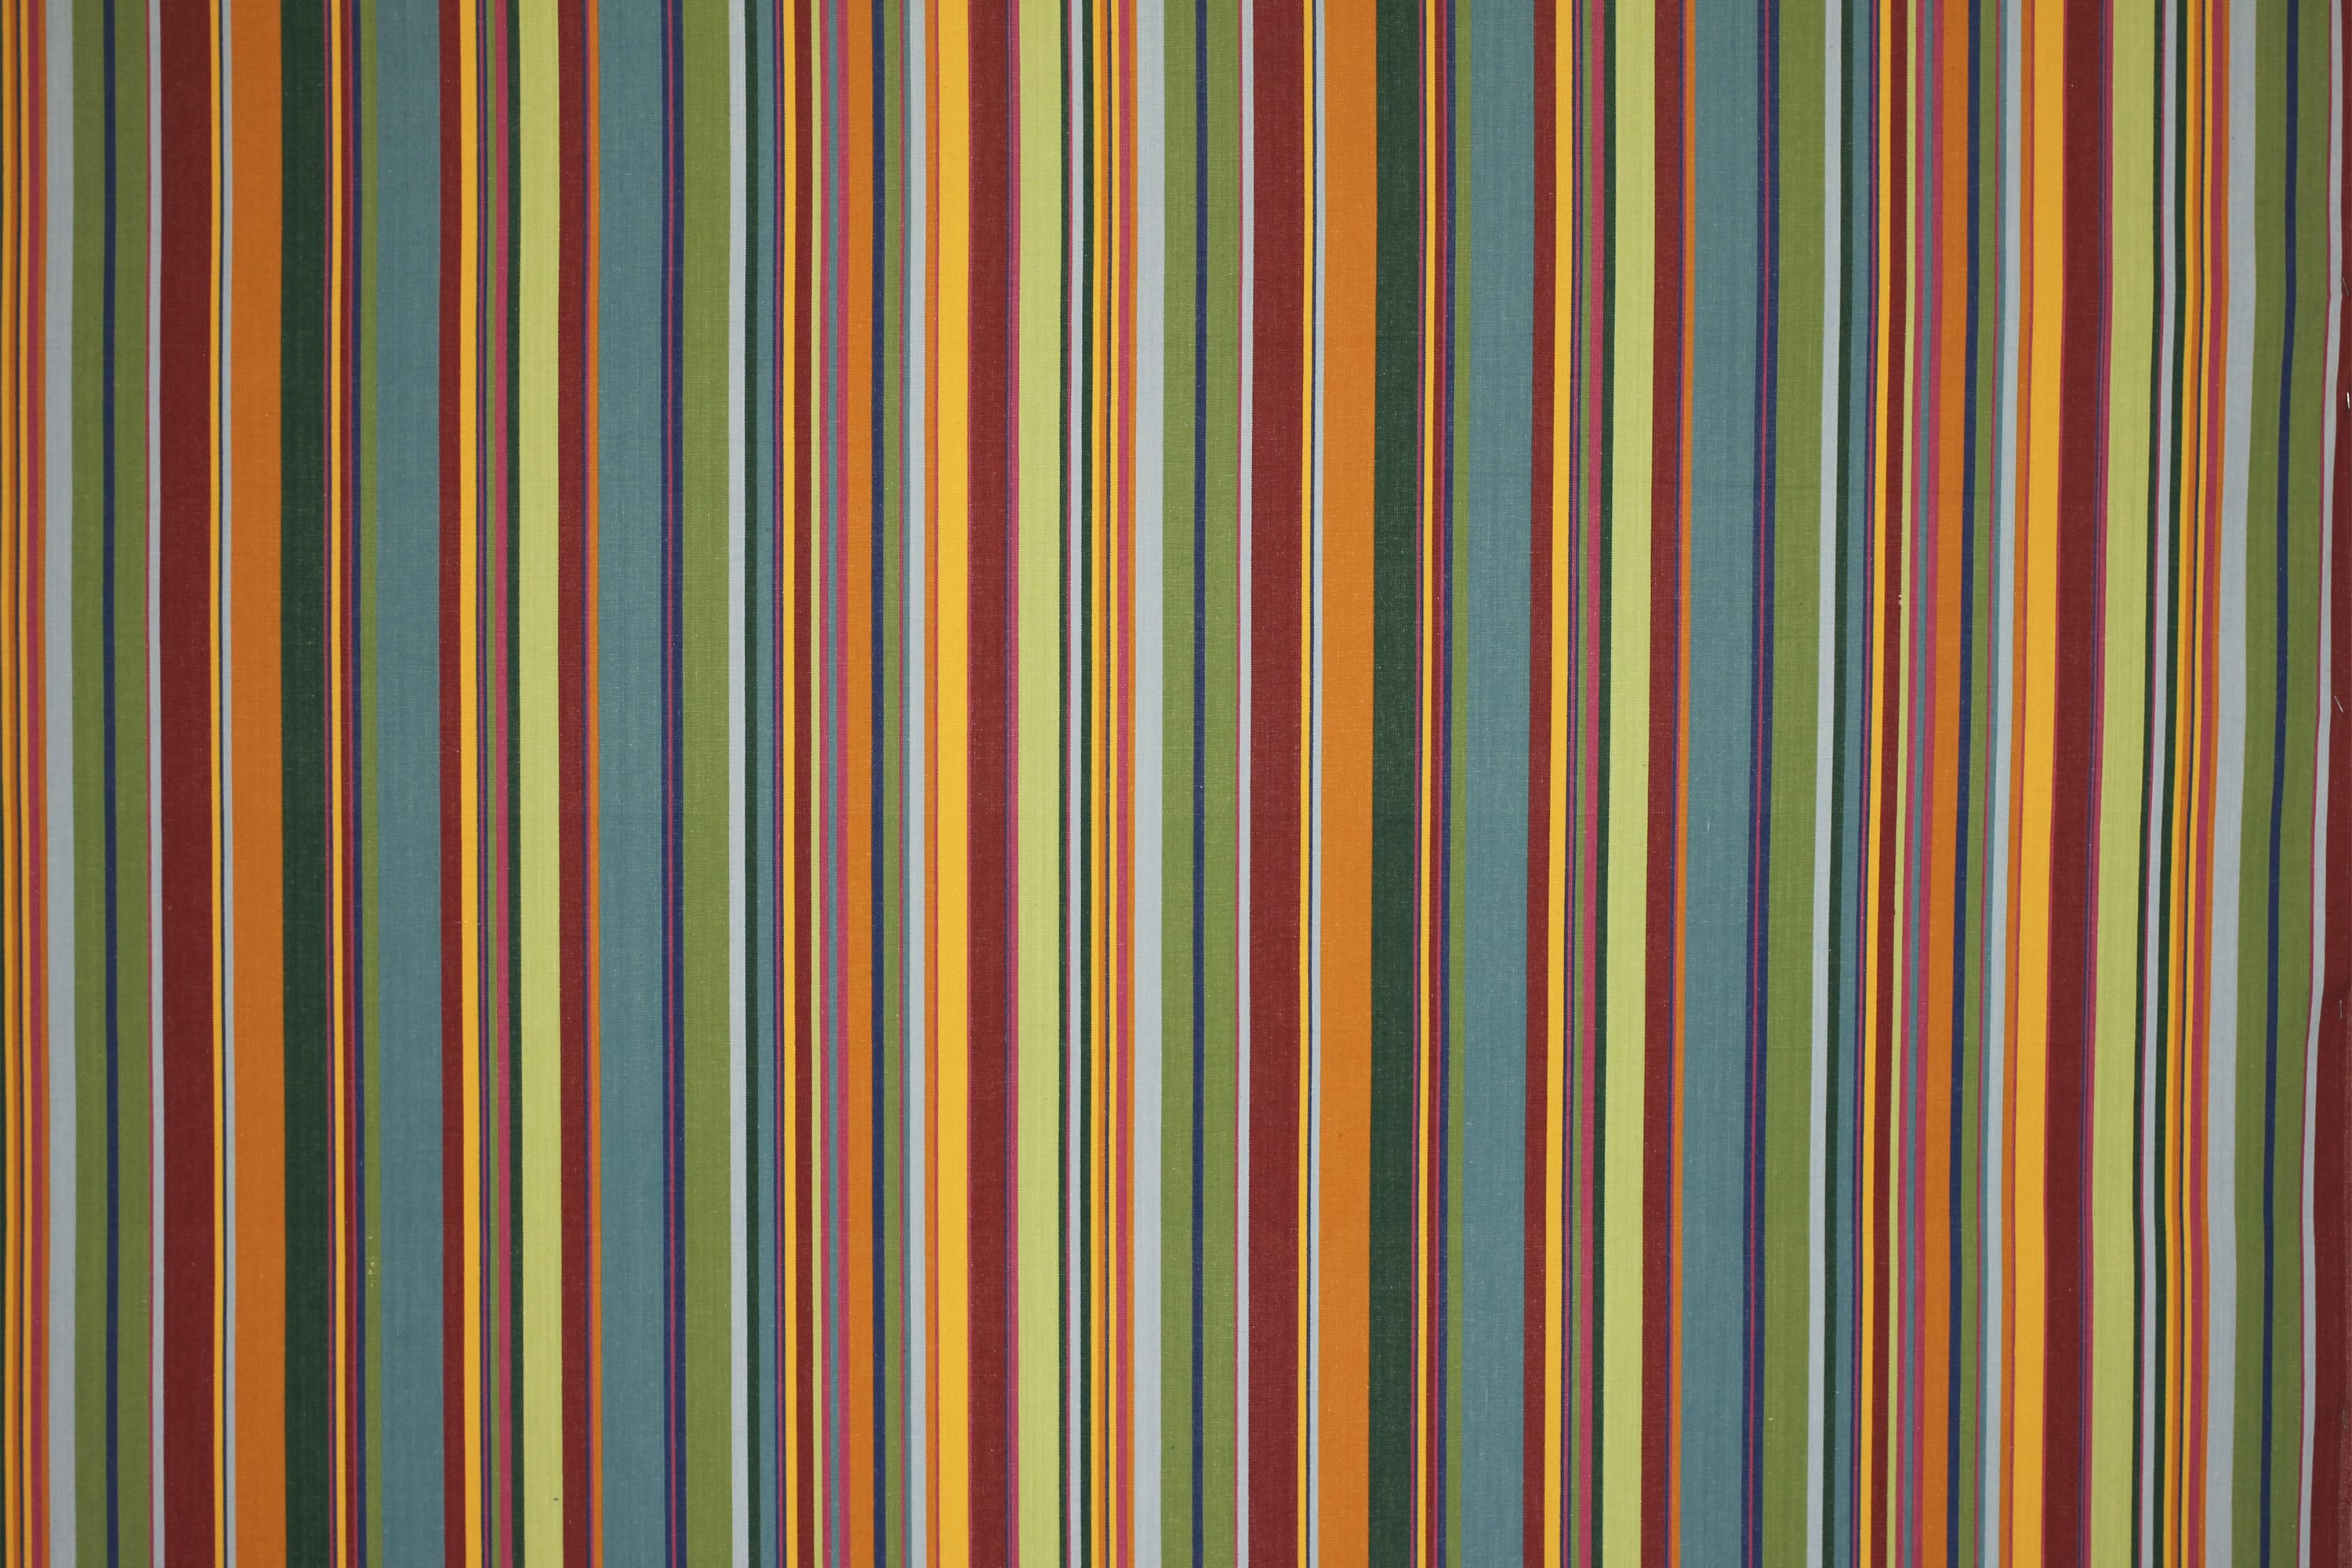 fabrics for chairs striped patio chair covers sale bottle green and red fabric the stripes company united states bowling interior 150cm